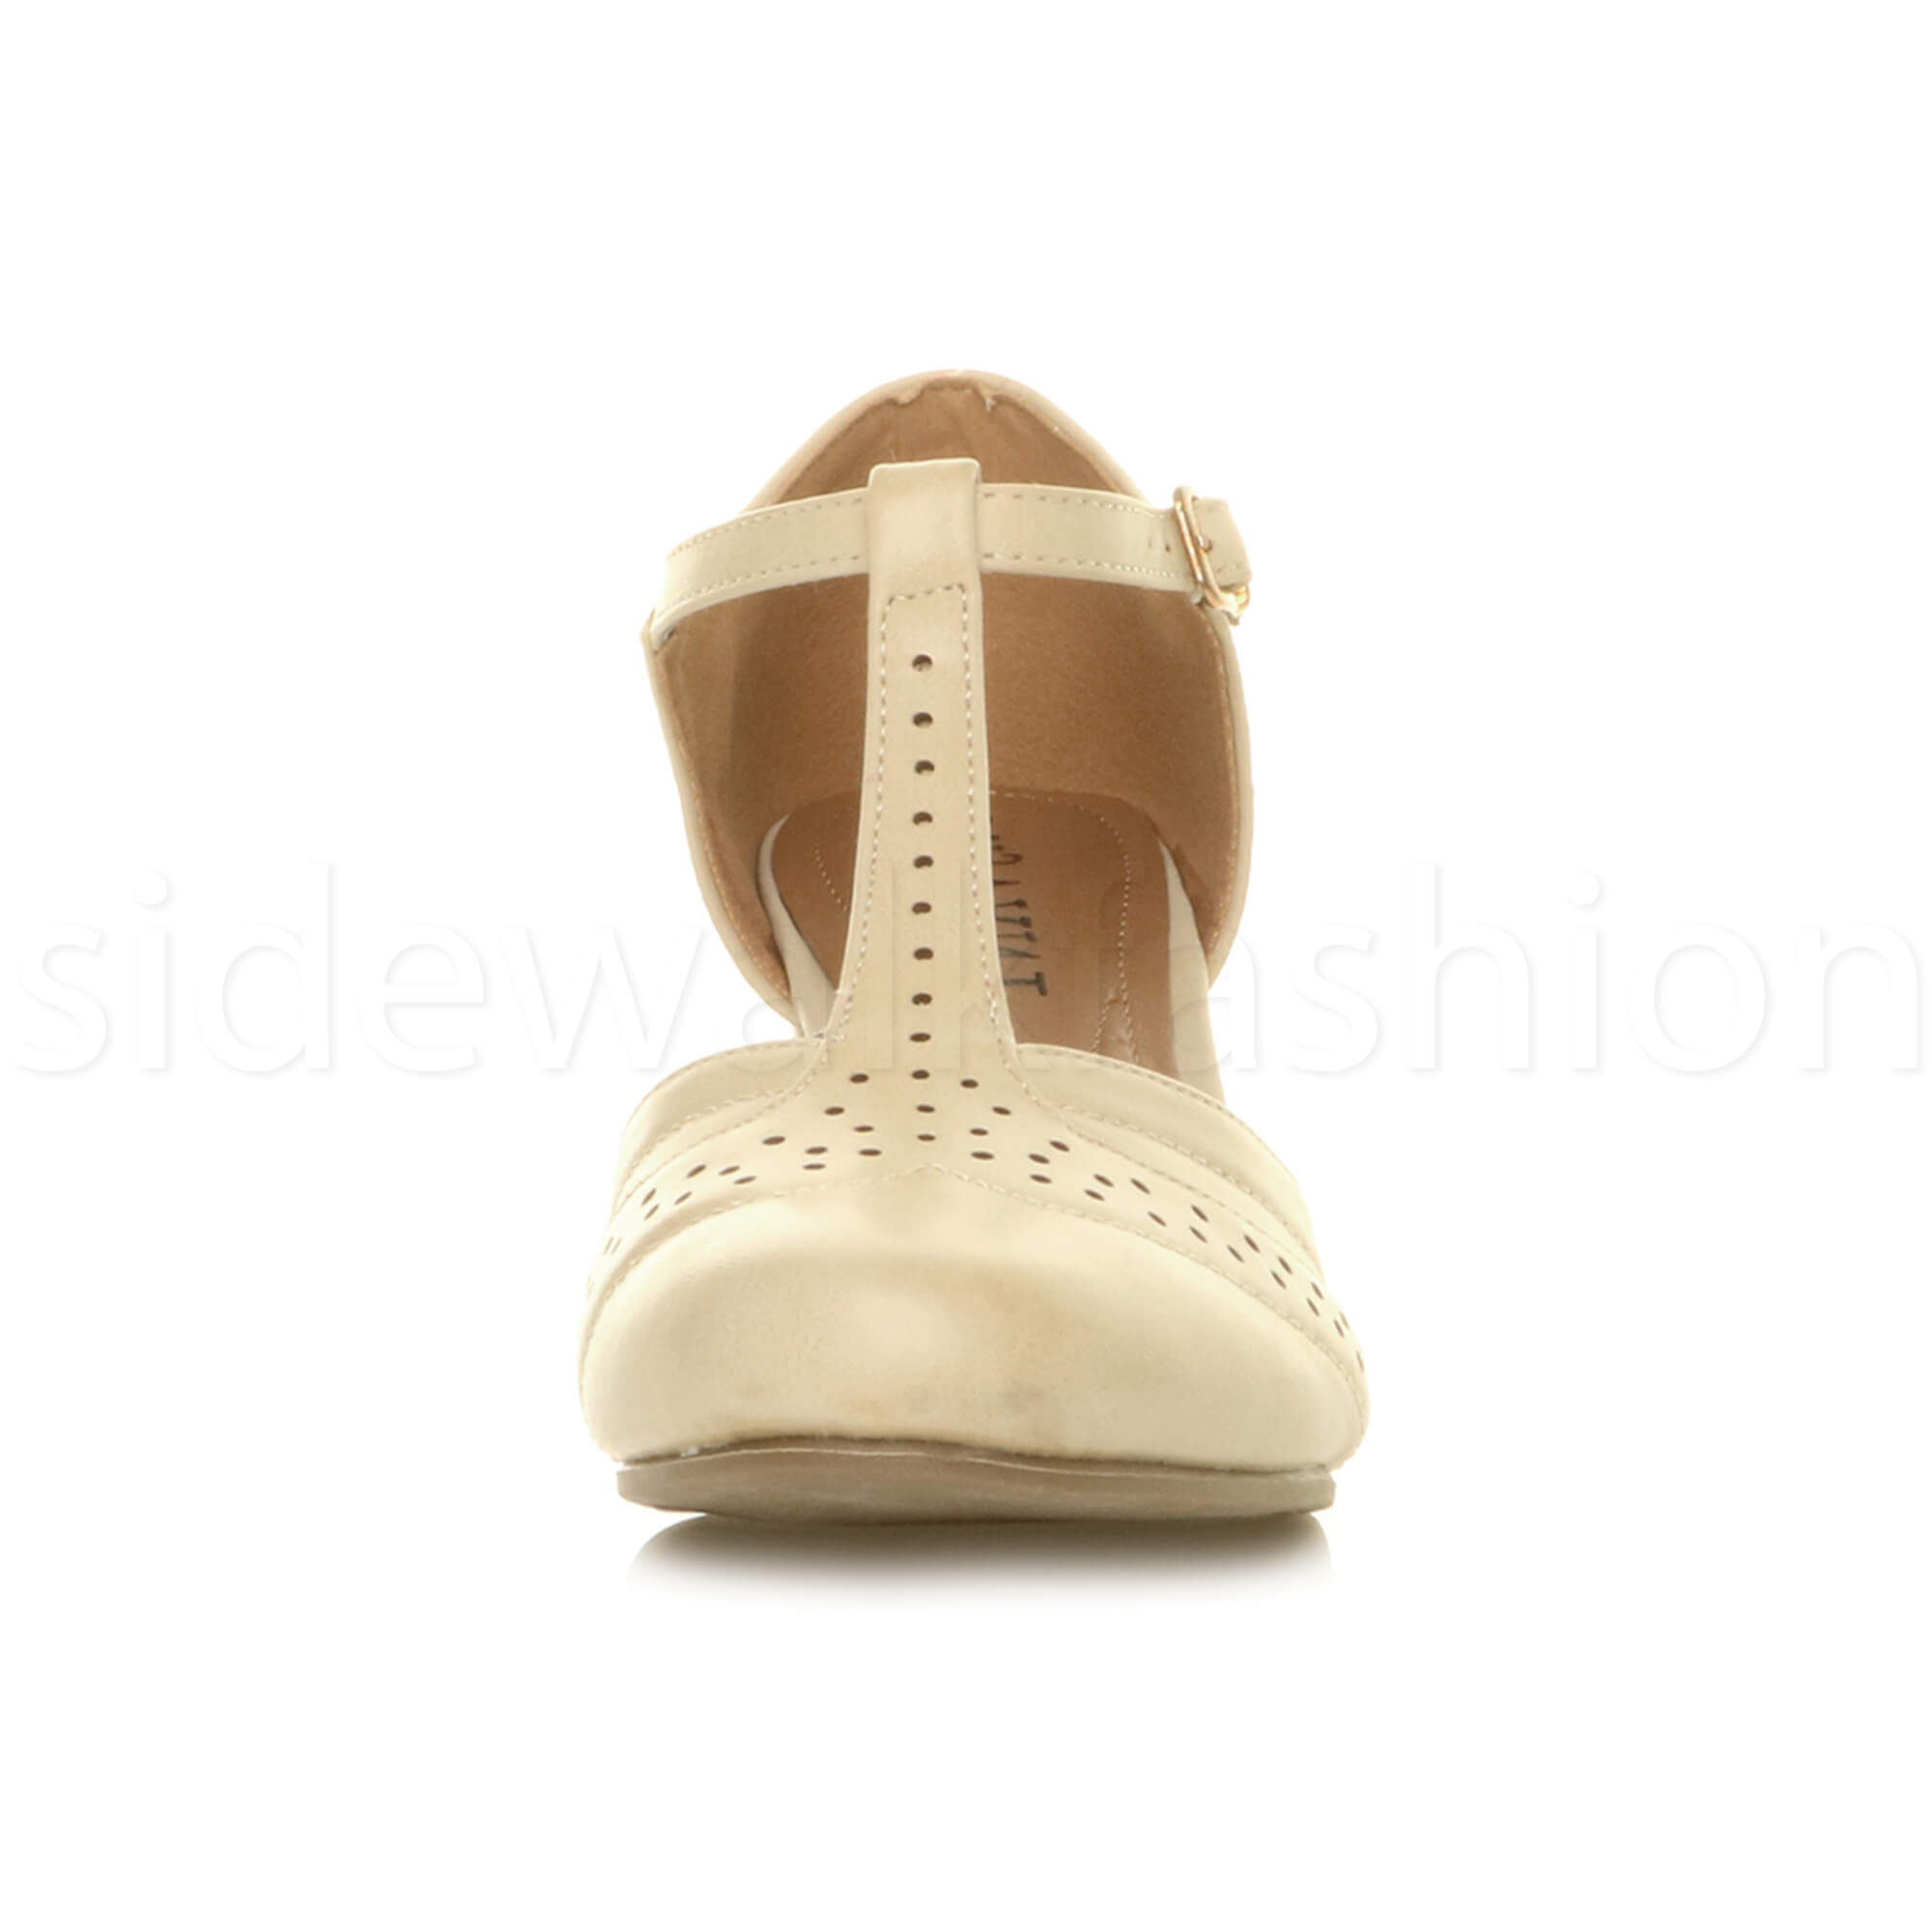 Womens-ladies-block-low-mid-heel-smart-work-Mary-Jane-T-bar-brogue-court-shoes thumbnail 49